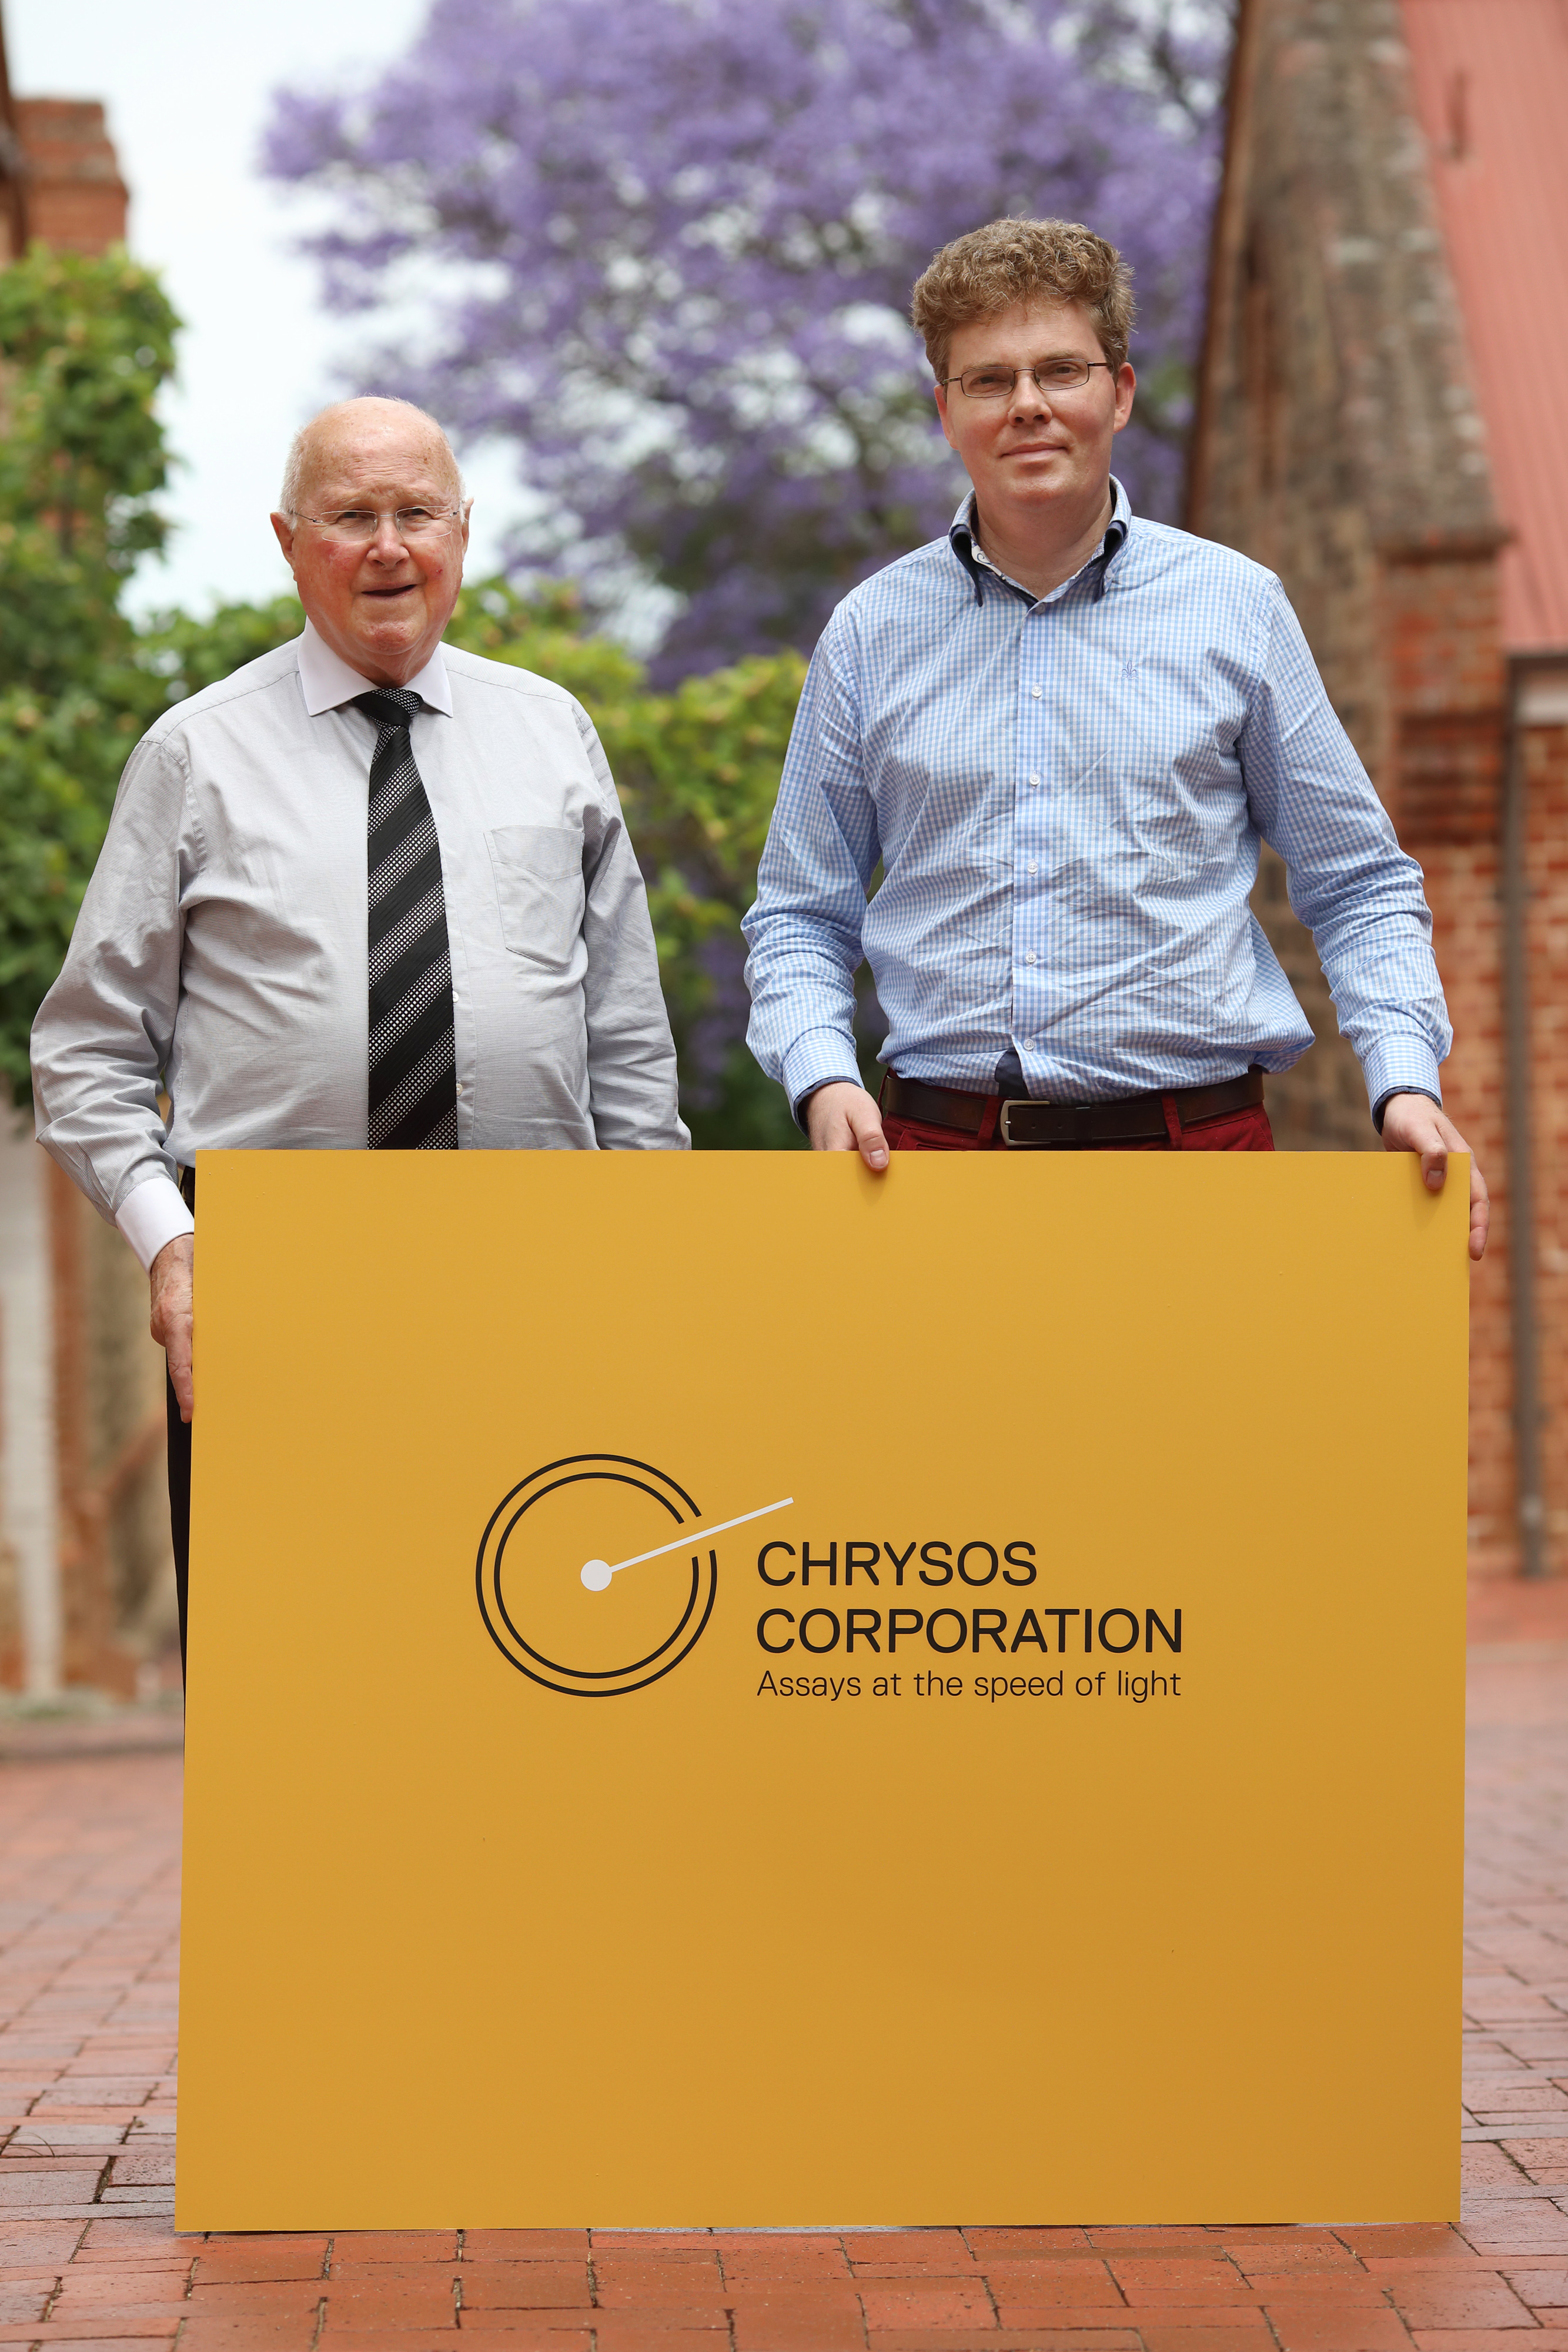 (L-R): Mr Anthony McLellan, Chairman of Chrysos, and Dr James Tickner , CSIRO's lead inventor of the PhotonAssay X-ray gold detection technology.